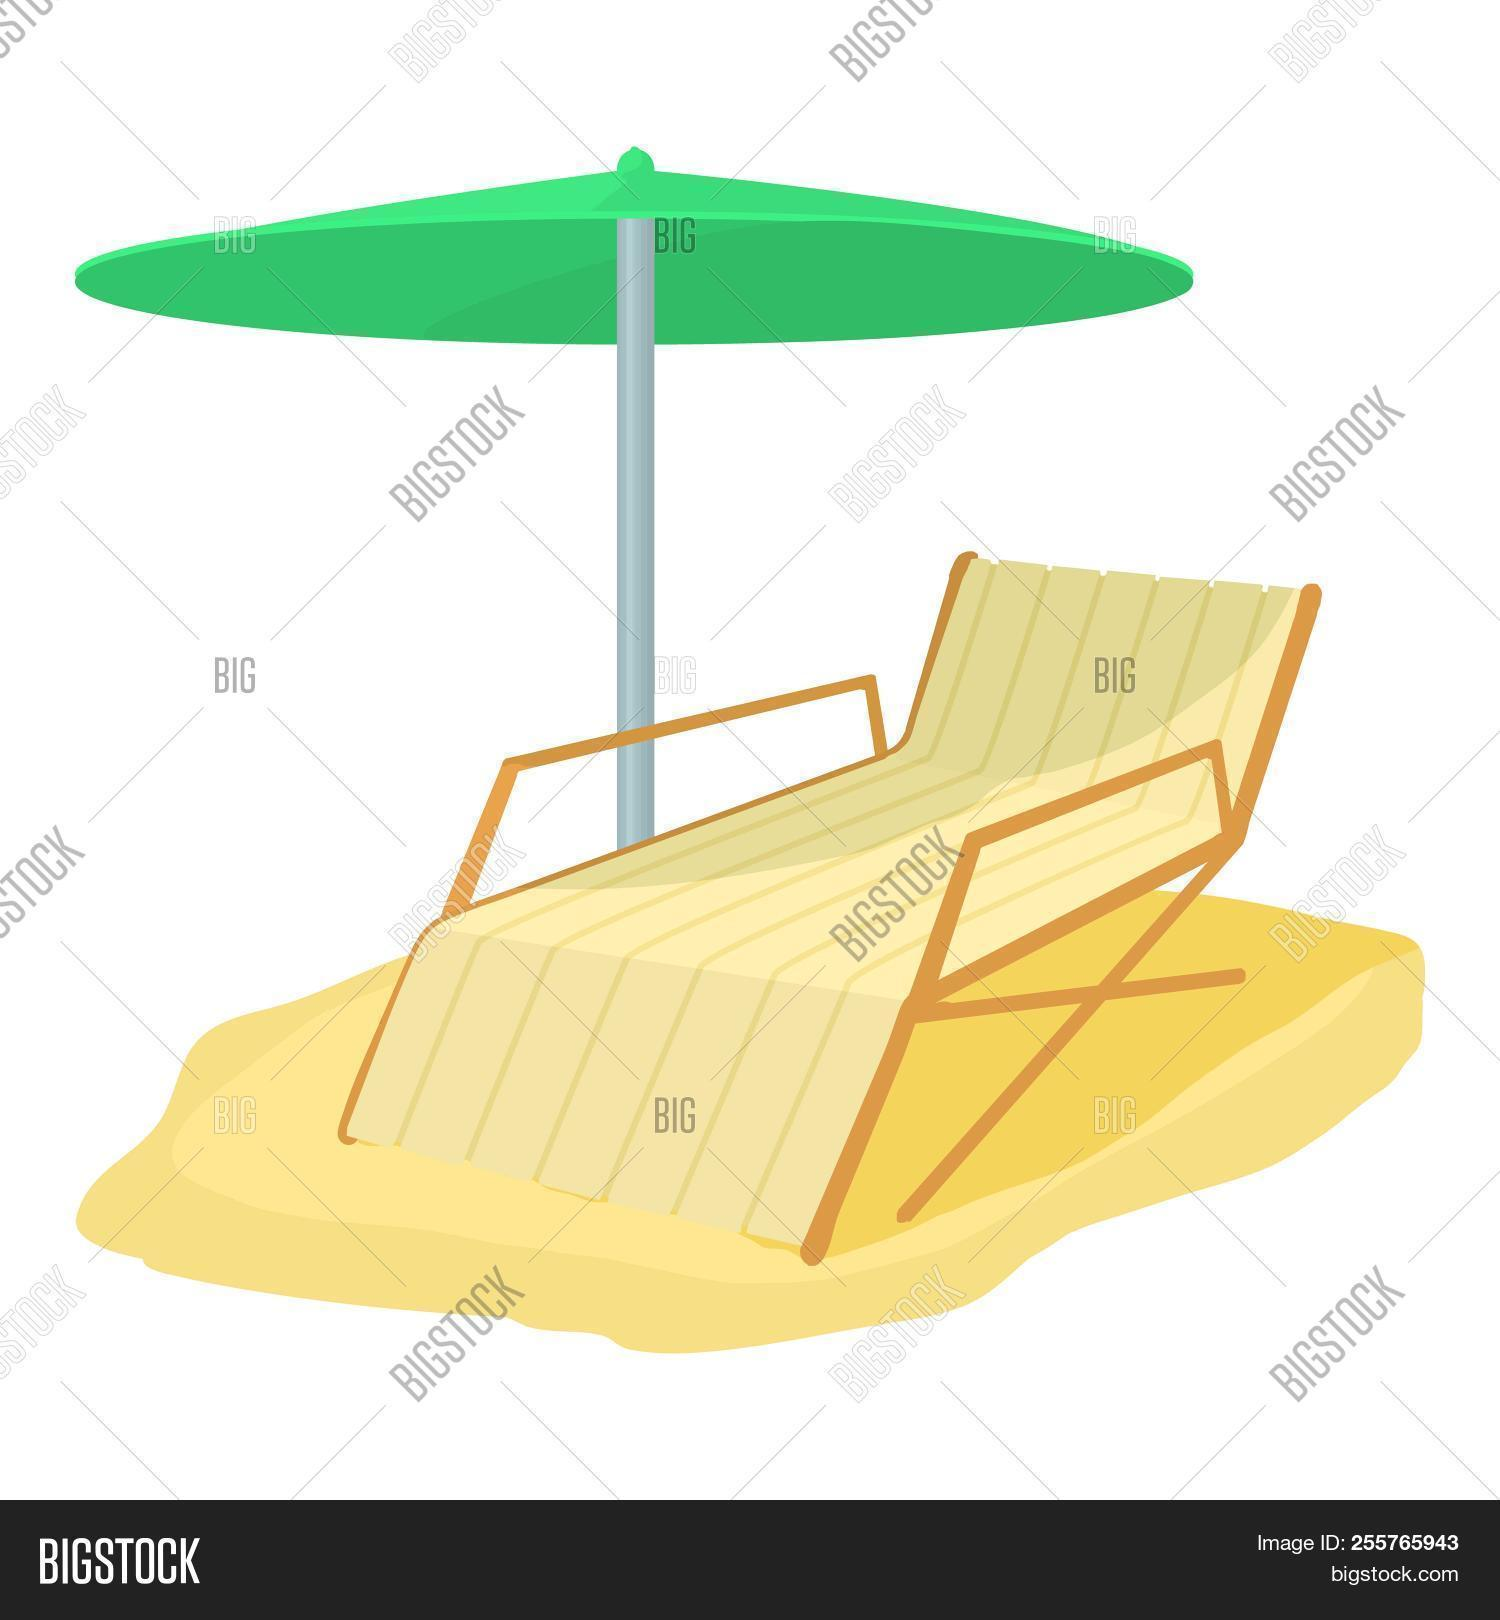 Deck chair icon. Cartoon illustration of deck chair icon for web